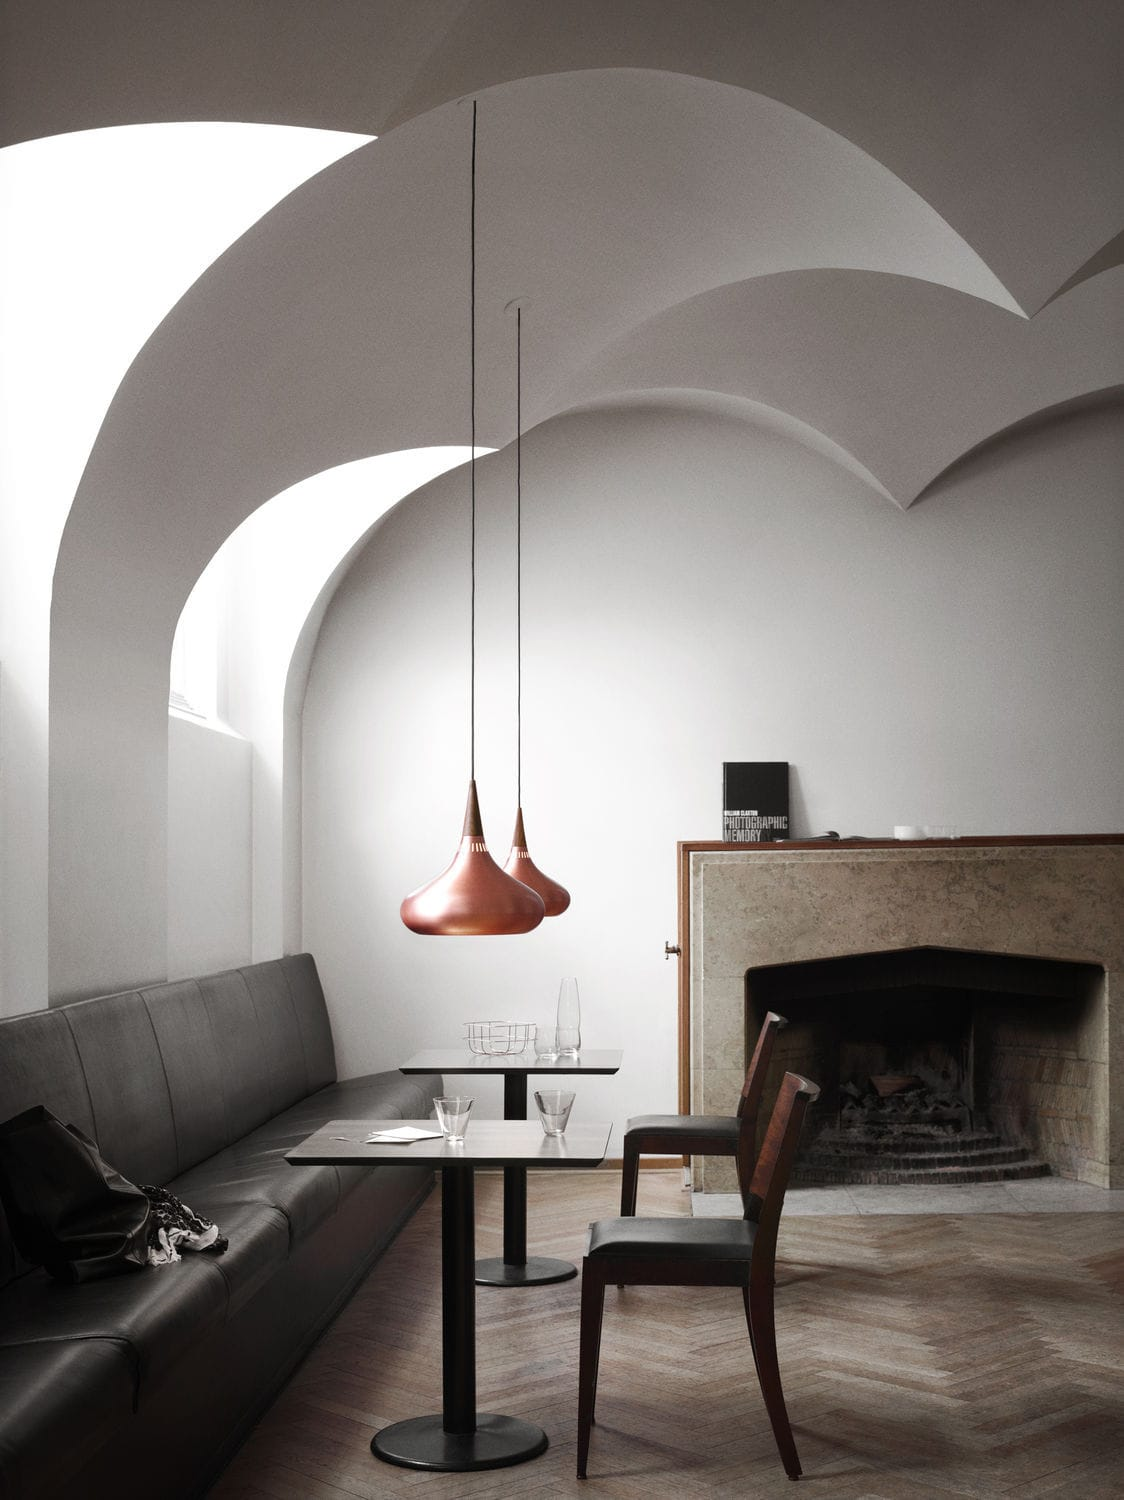 Pendant lamp with contemporary design luxury lighting Top 20 Pendant Luxury Lighting 61715 8760777